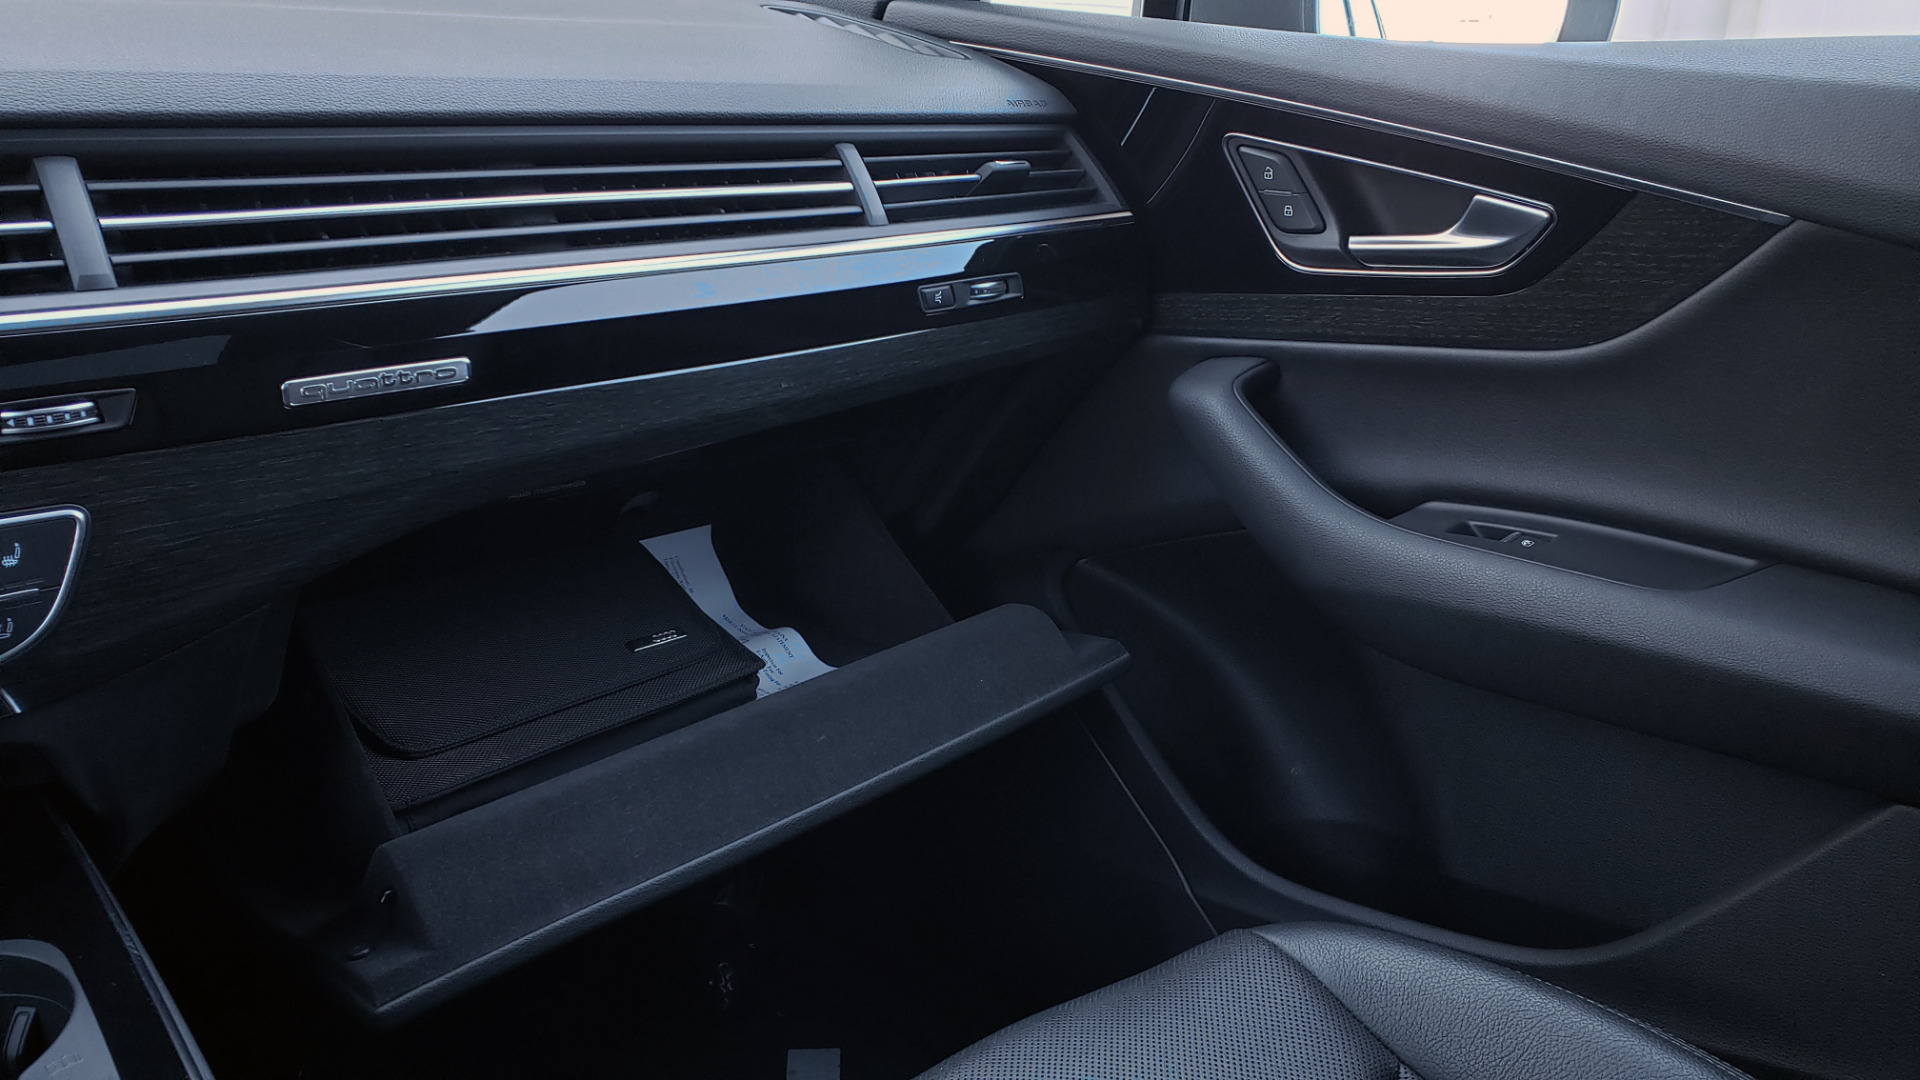 Used 2017 Audi Q7 PREMIUM PLUS / 2.0T TIPTRONIC / NAV / PANO-ROOF / 3-ROW / REARVIEW for sale $33,999 at Formula Imports in Charlotte NC 28227 59